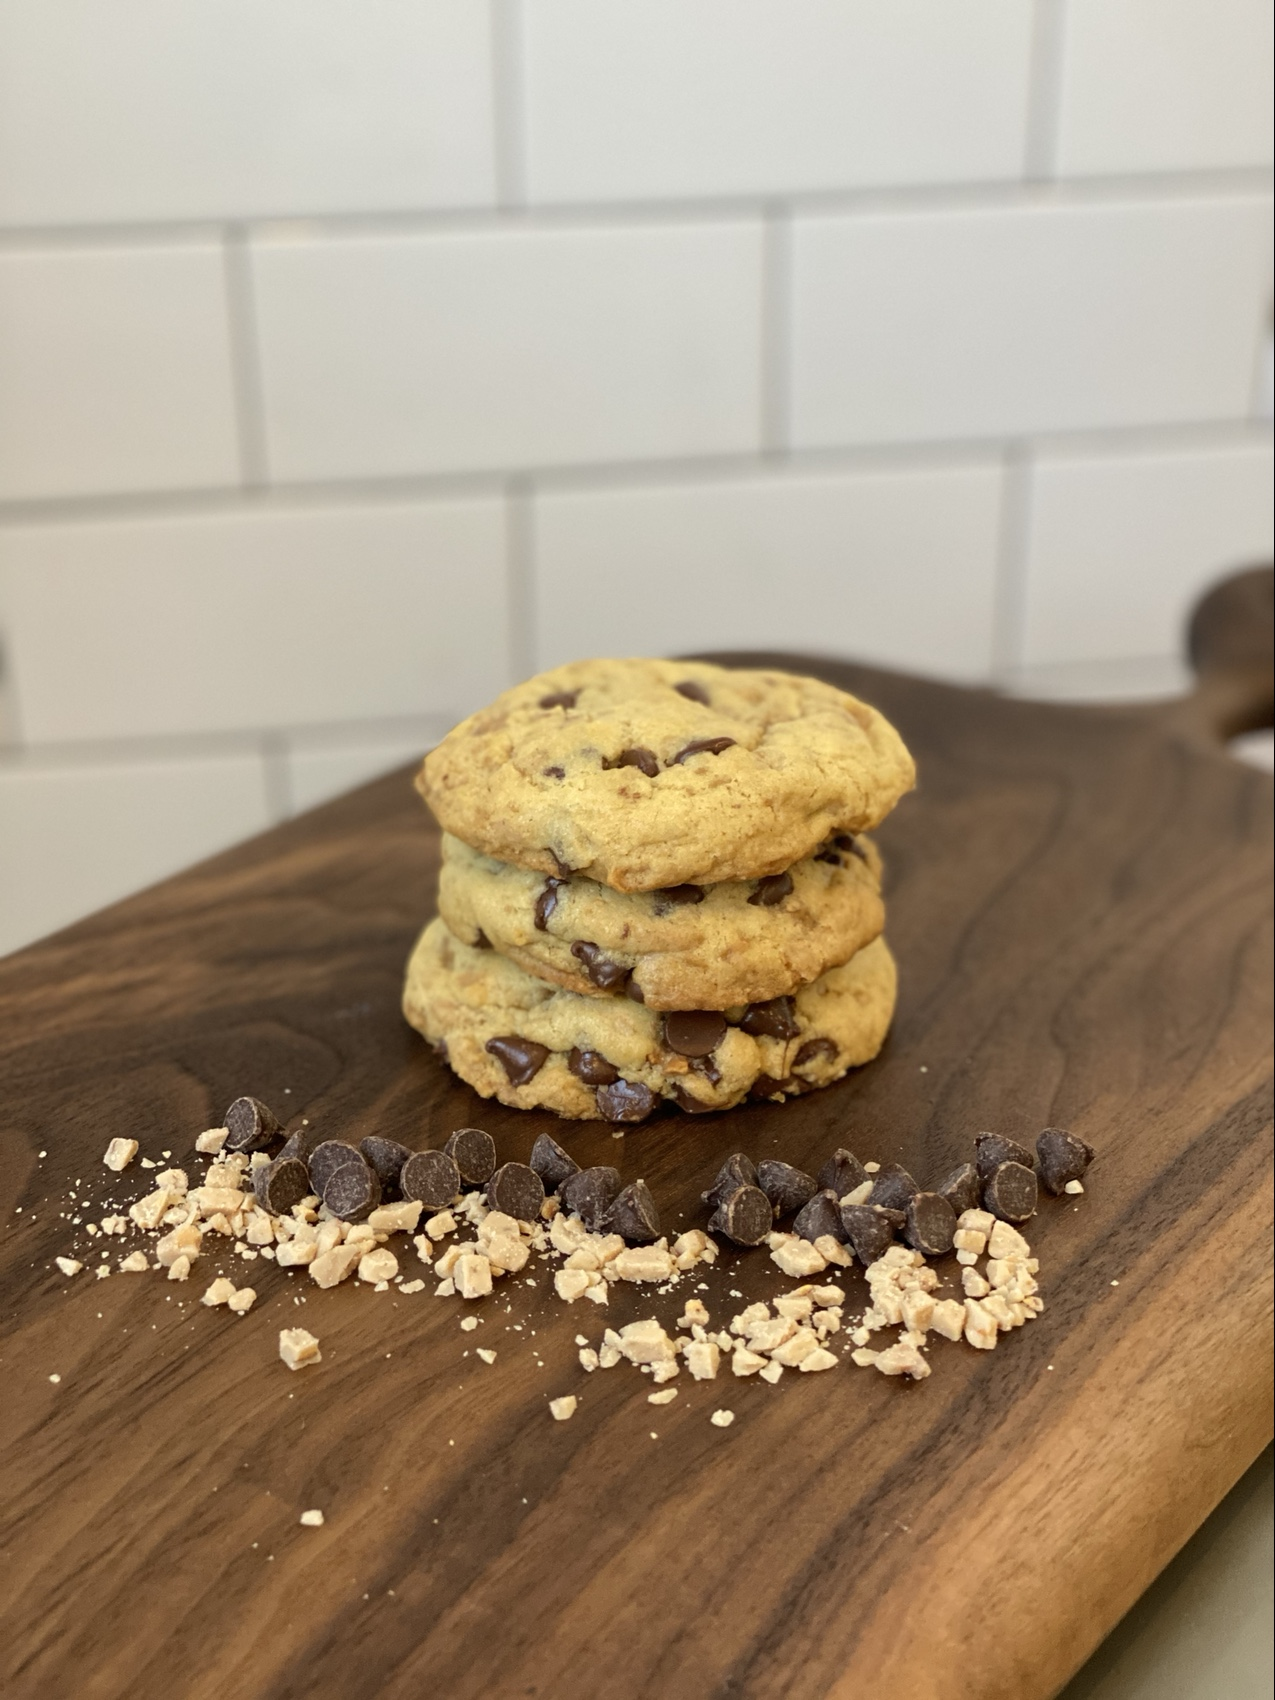 Chocolate chip and Toffee Cookies